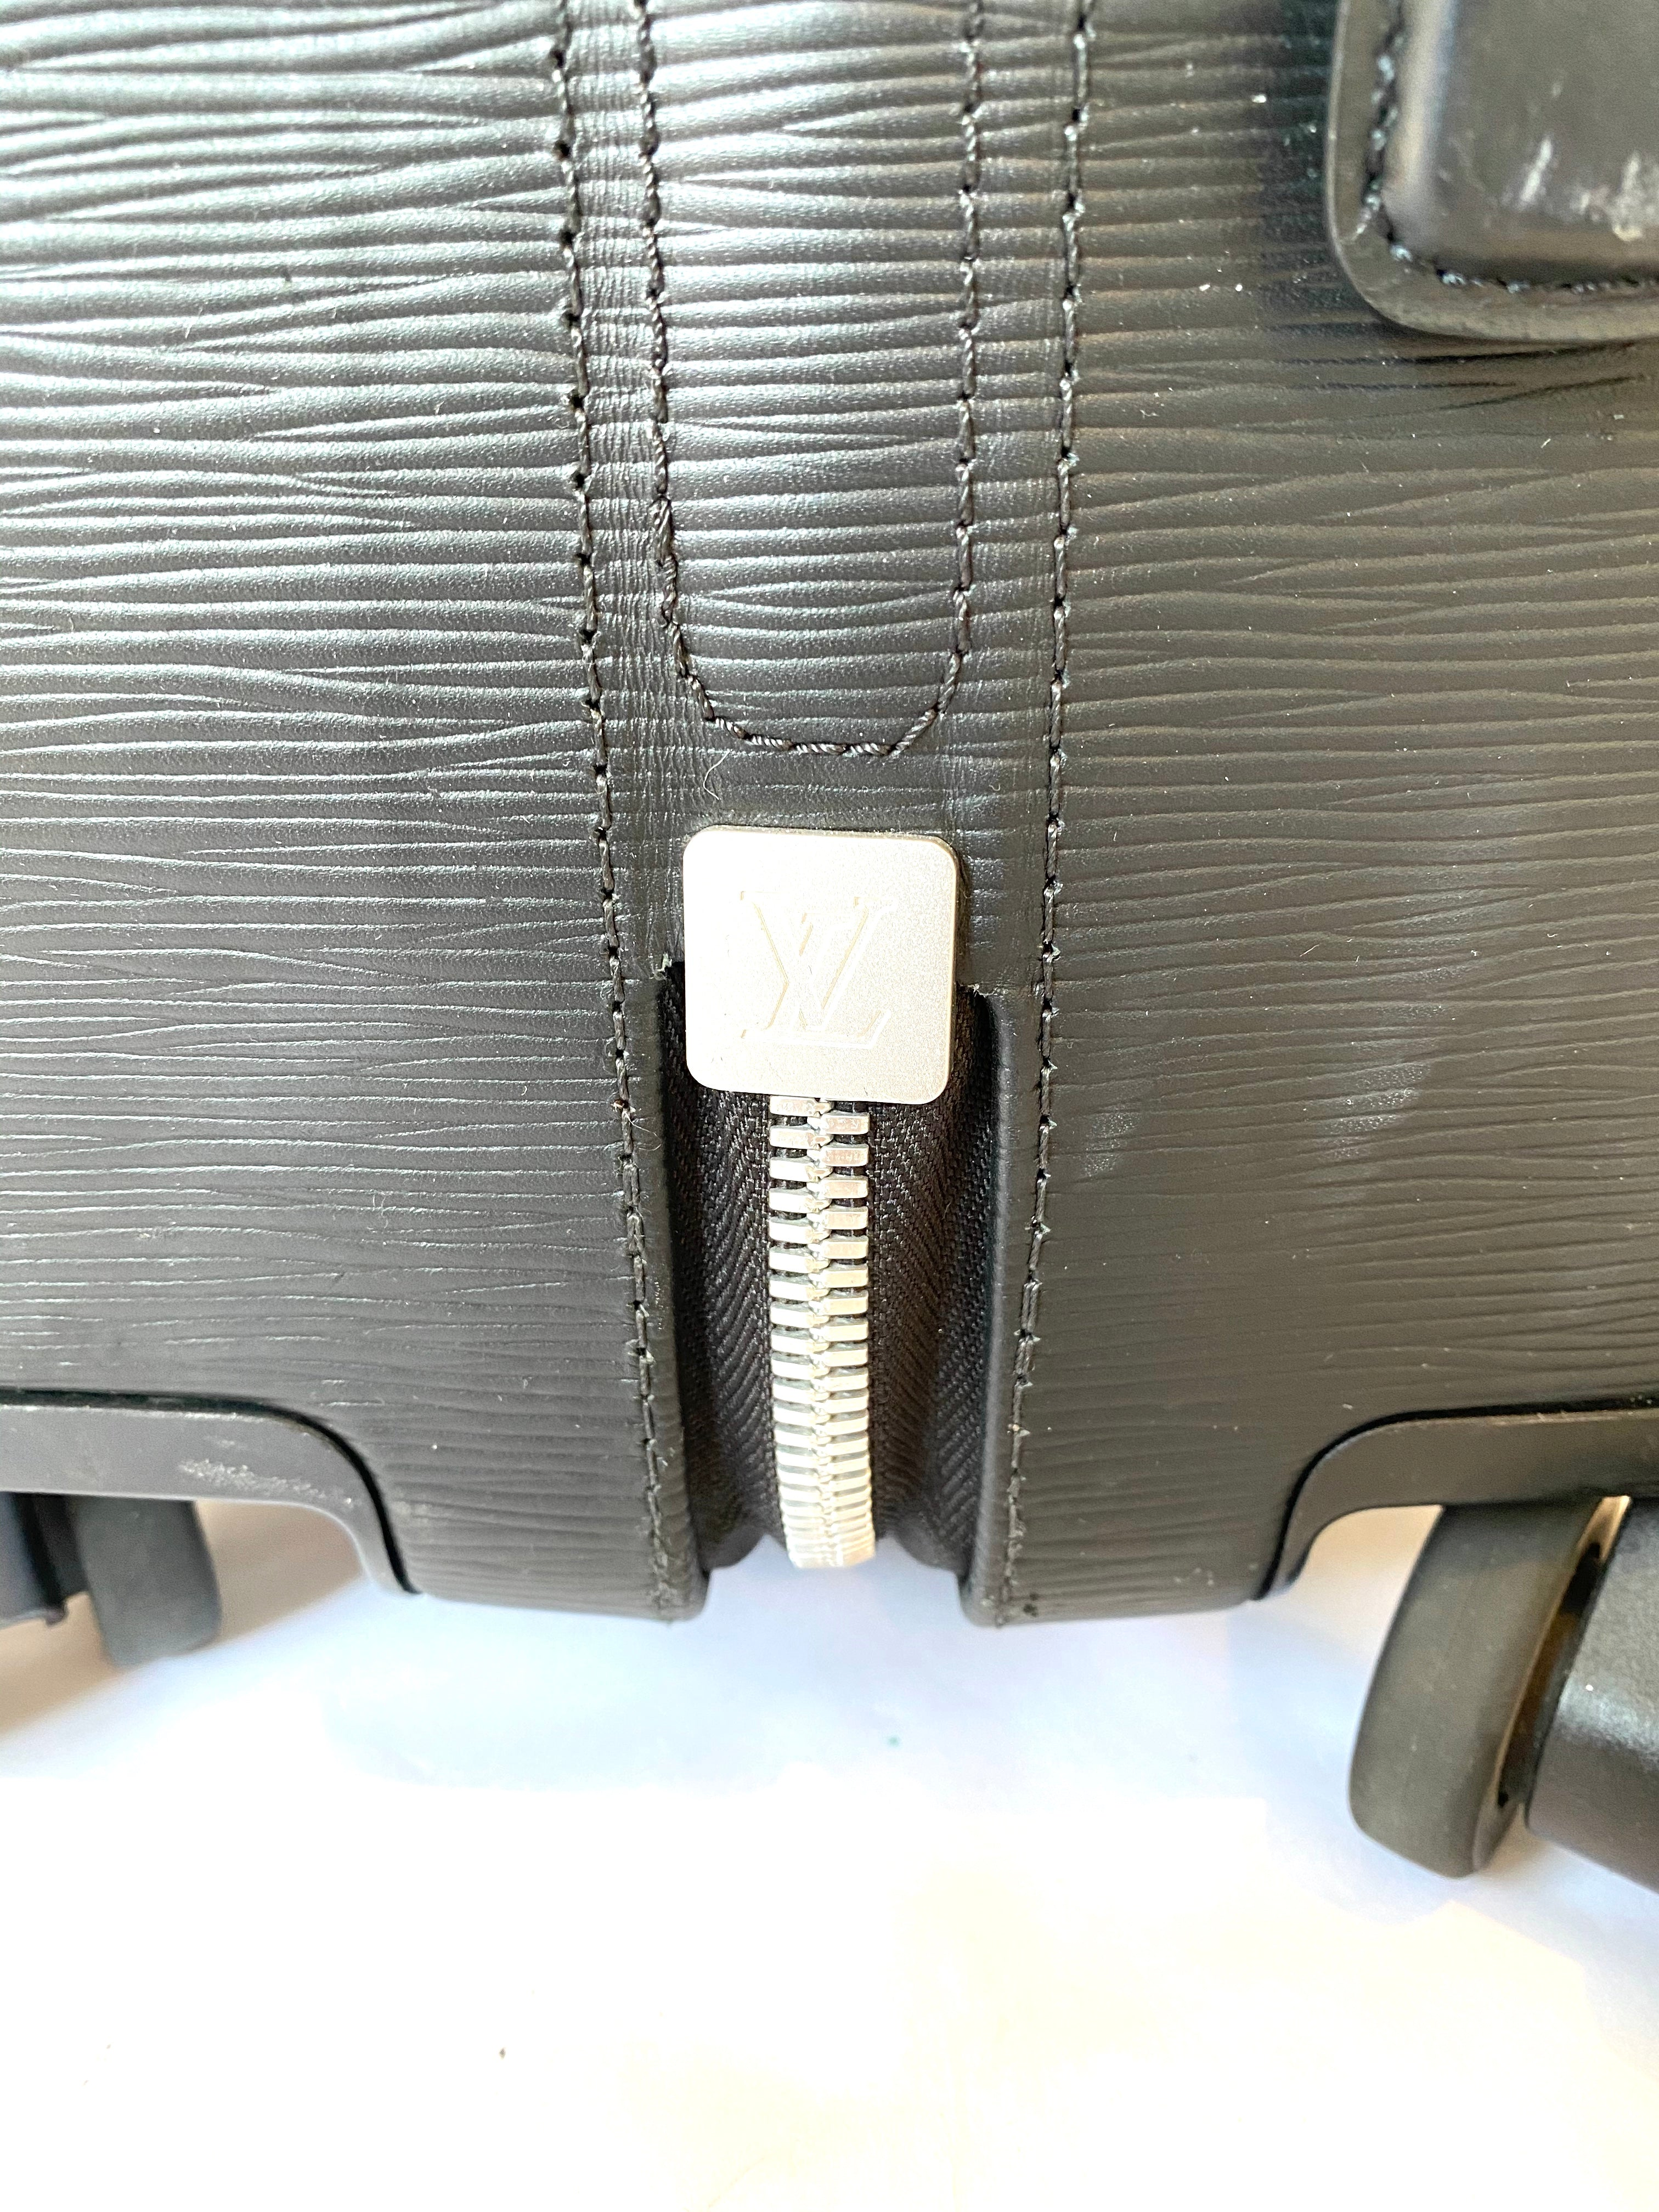 Louis Vuitton Epi Horizon 50 Suitcase from the 2018 Collection